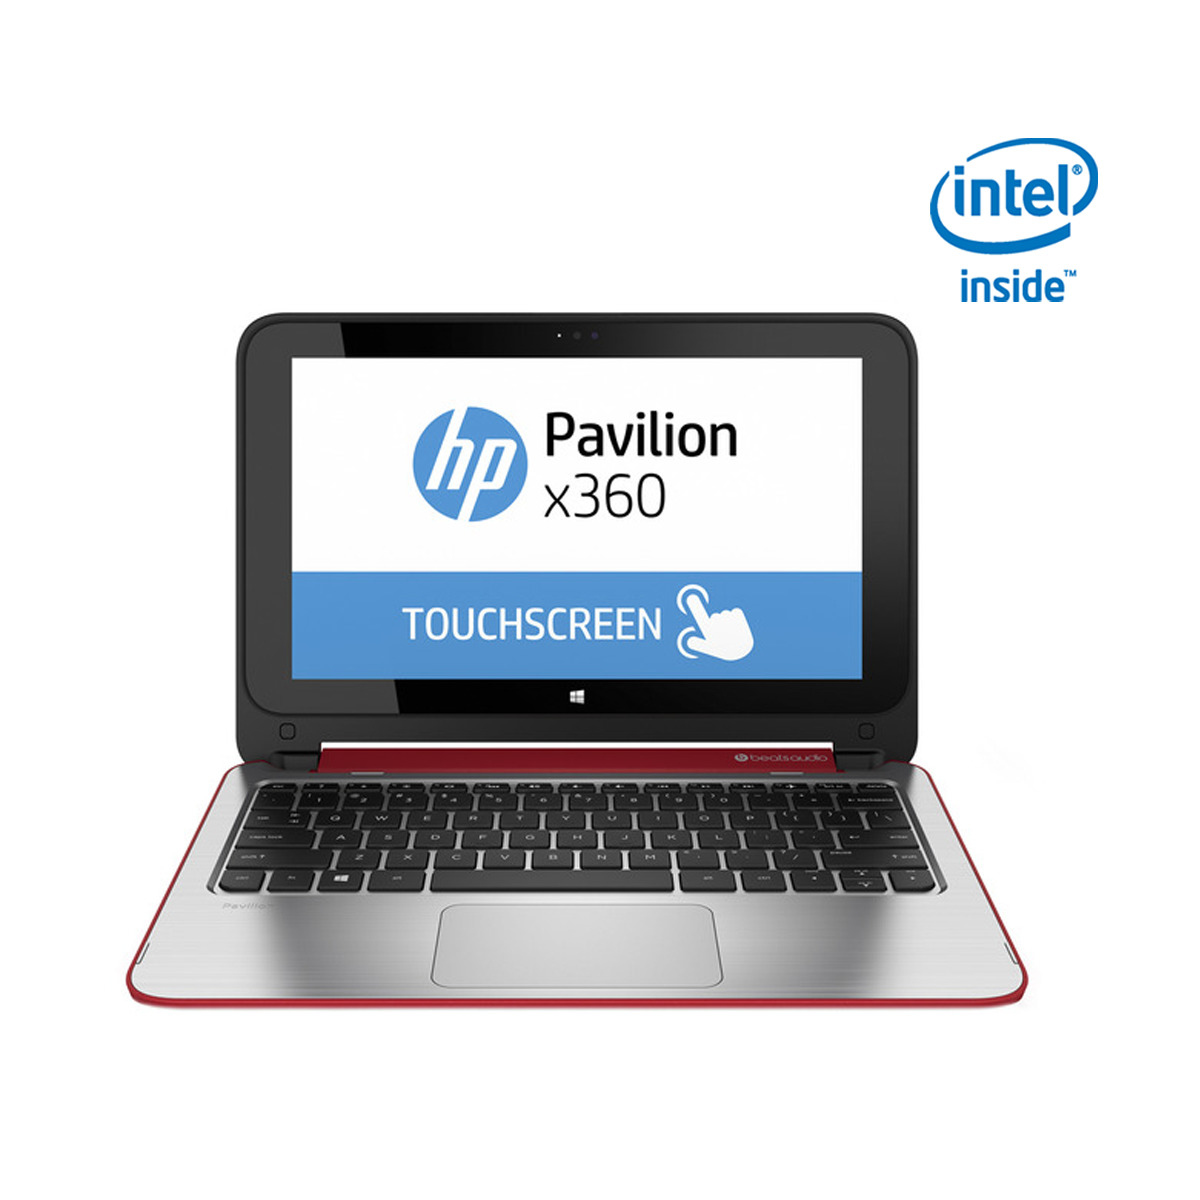 Portátil convertible 2 en 1 HP 11,6'' Pavillion x360 11-n007ns Intel Celeron N2840